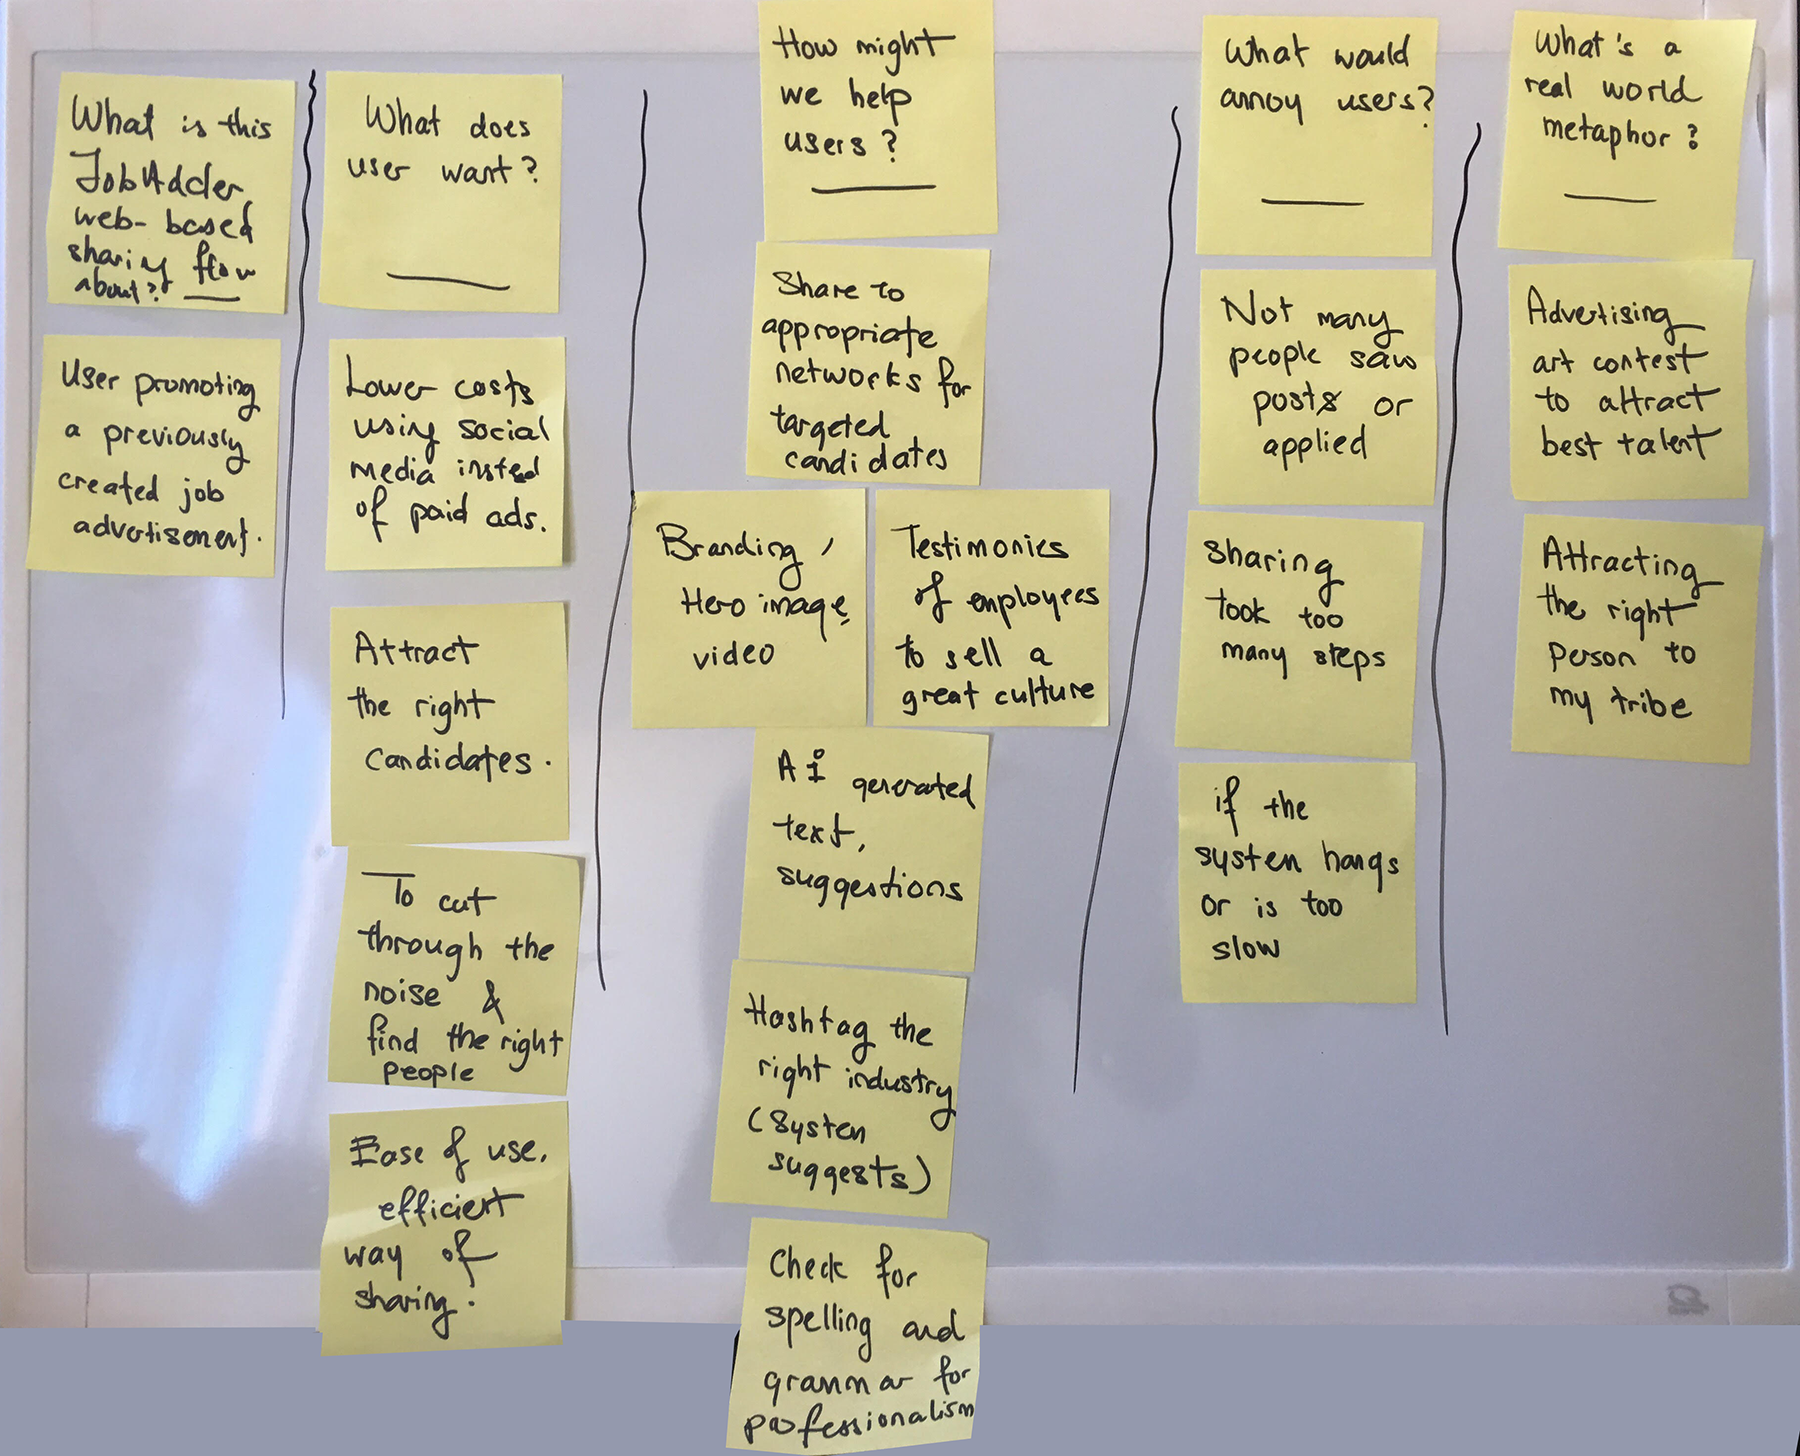 Unpacking the assumptions - Based on the quick research I did online, I went on to brainstorm the business and user assumptions to inform on the design of the workflow.